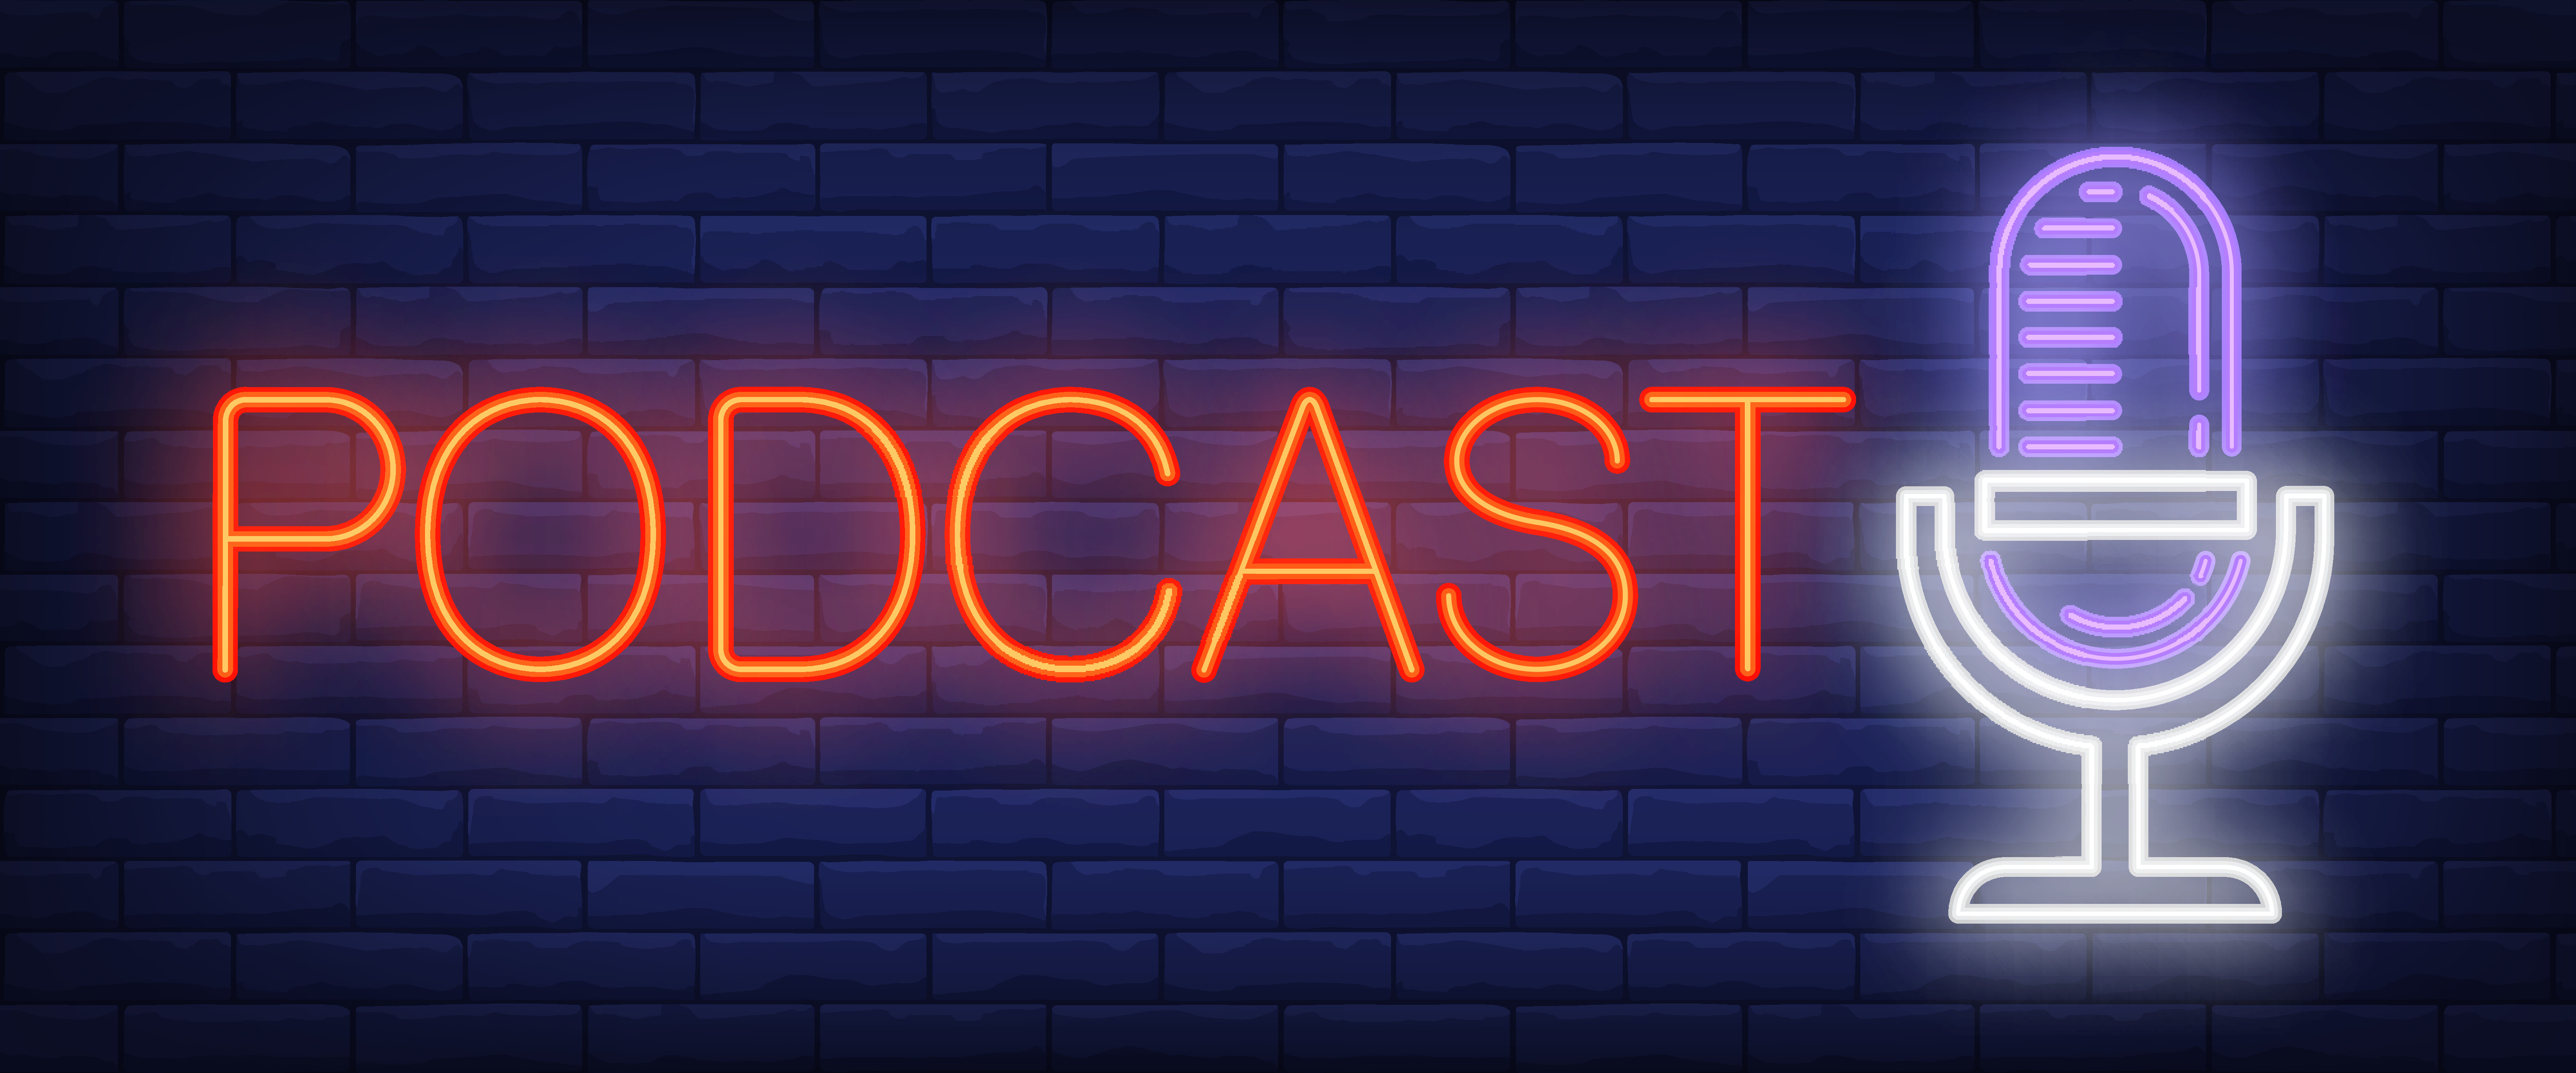 podcast-neon-sign-microphone-on-brick-wall-background-vector-illustration-in-neon-style-for-radio-station-and-broadcasting